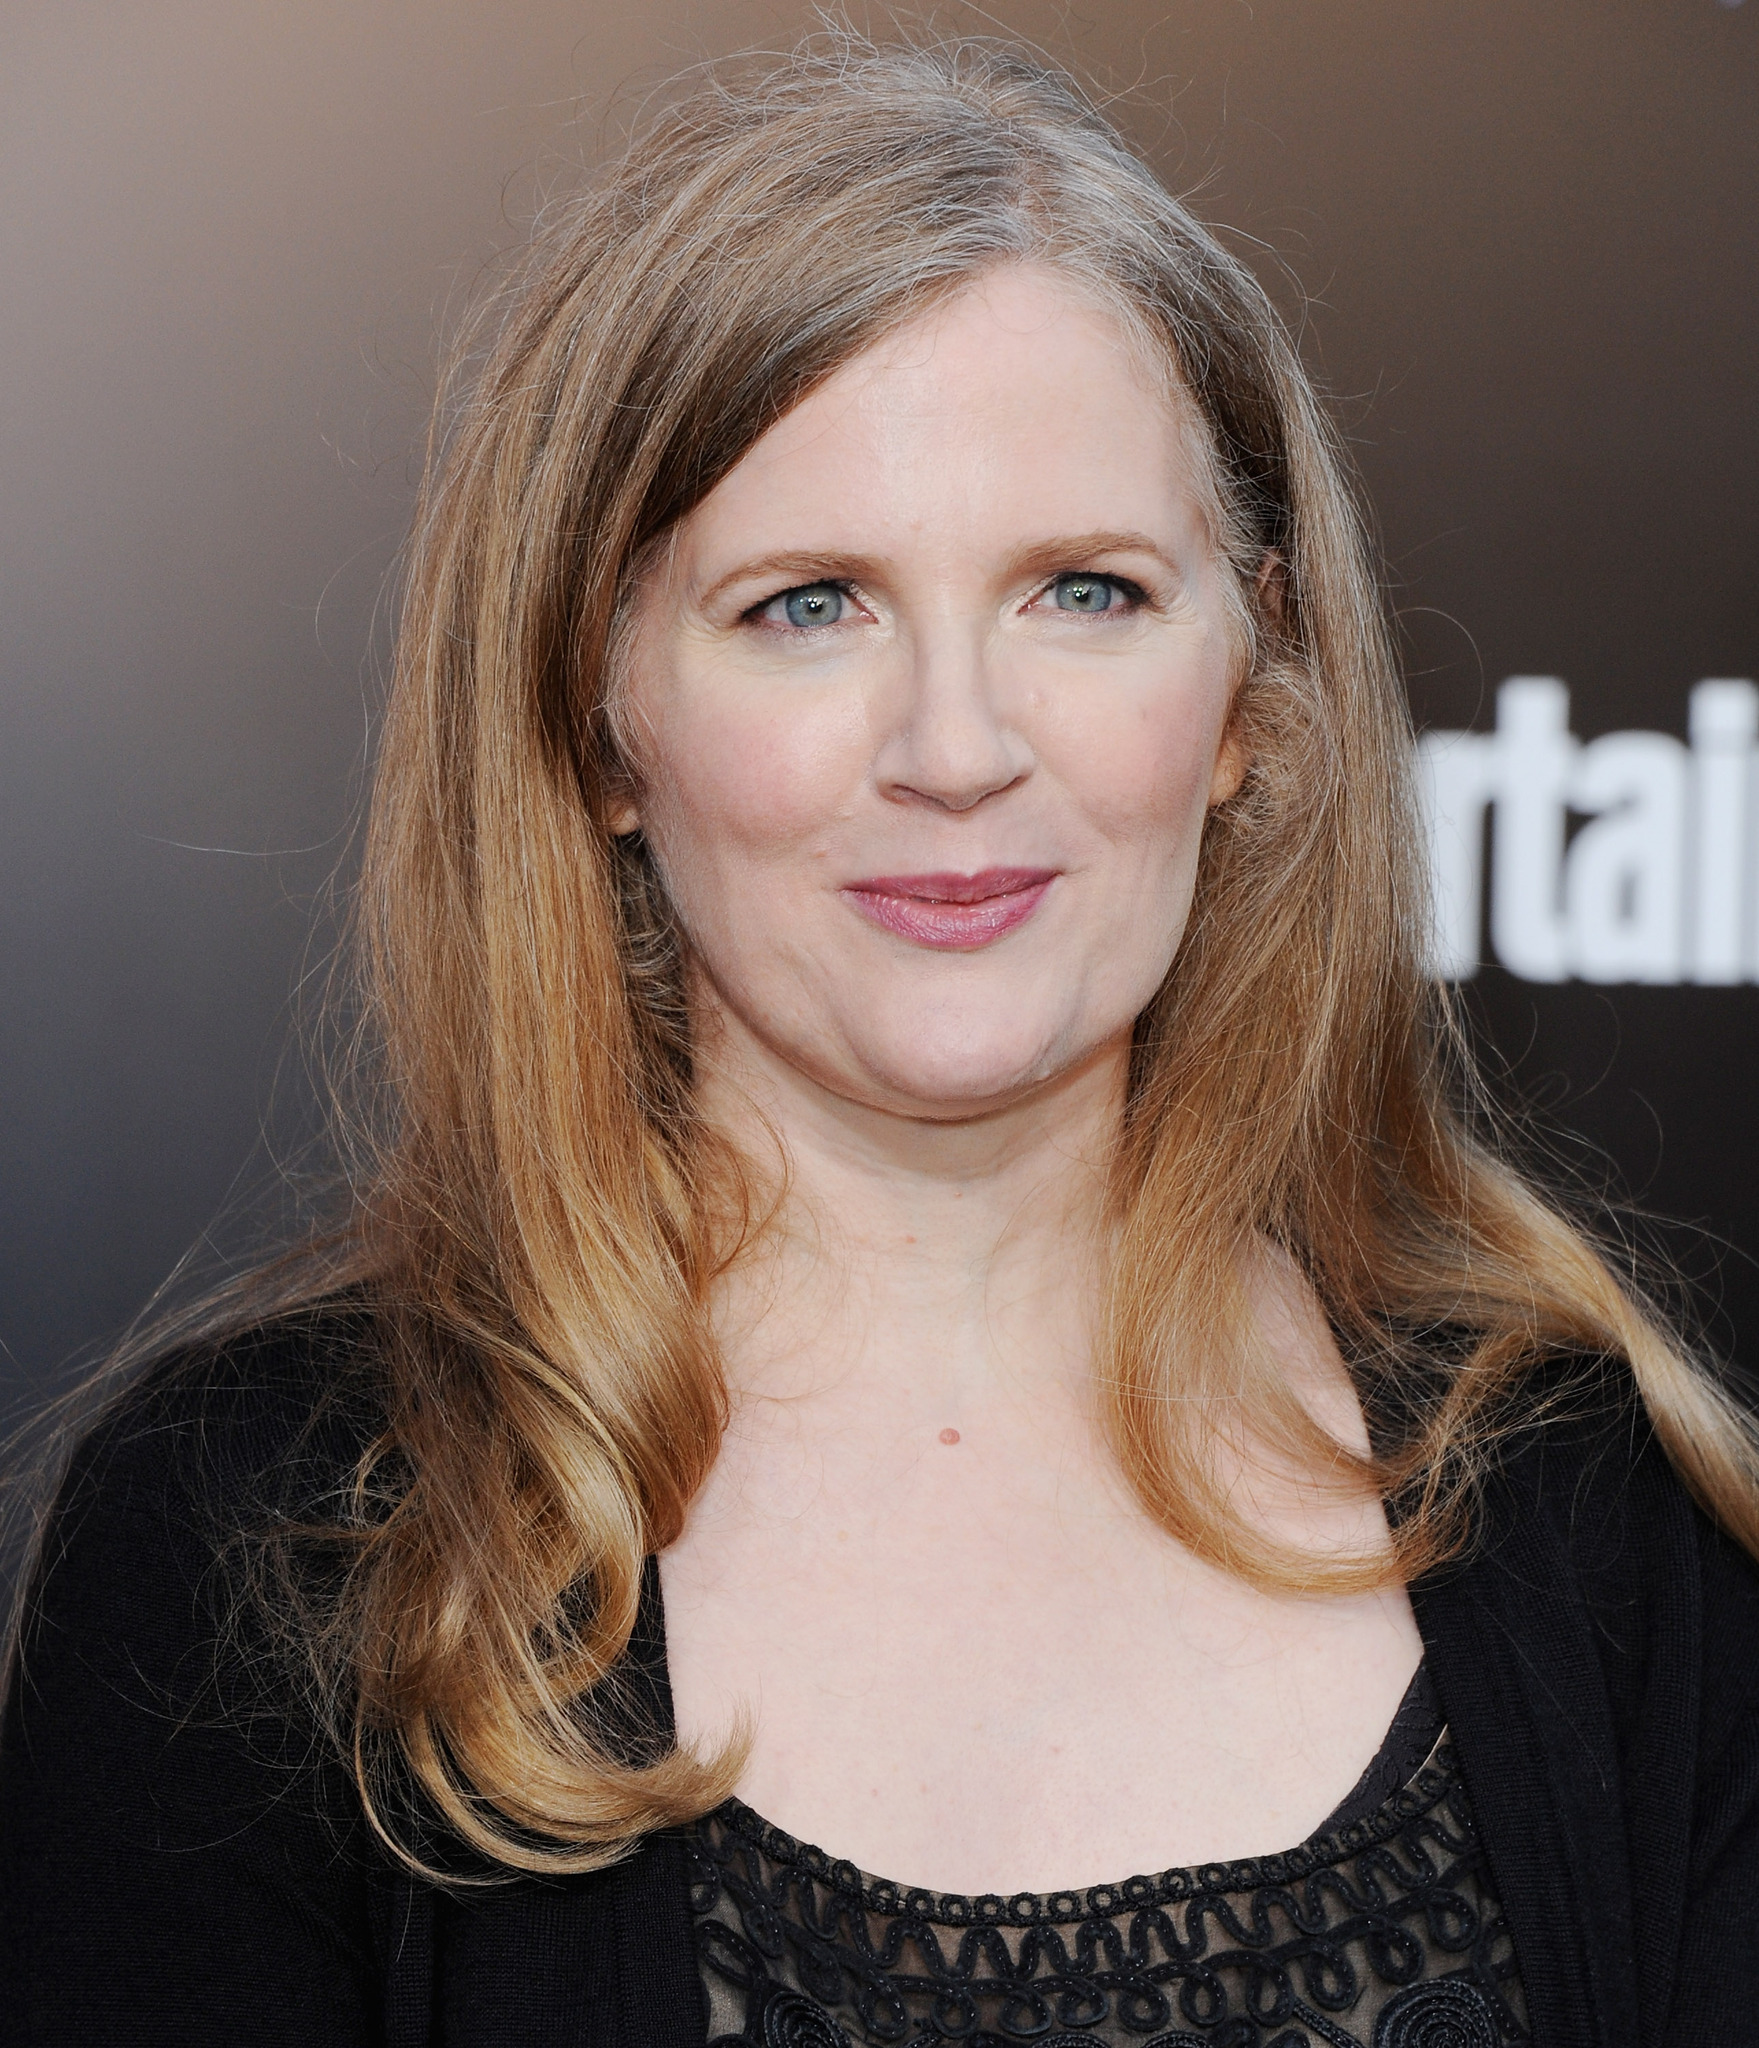 Photos Suzanne Collins nudes (72 photos), Fappening